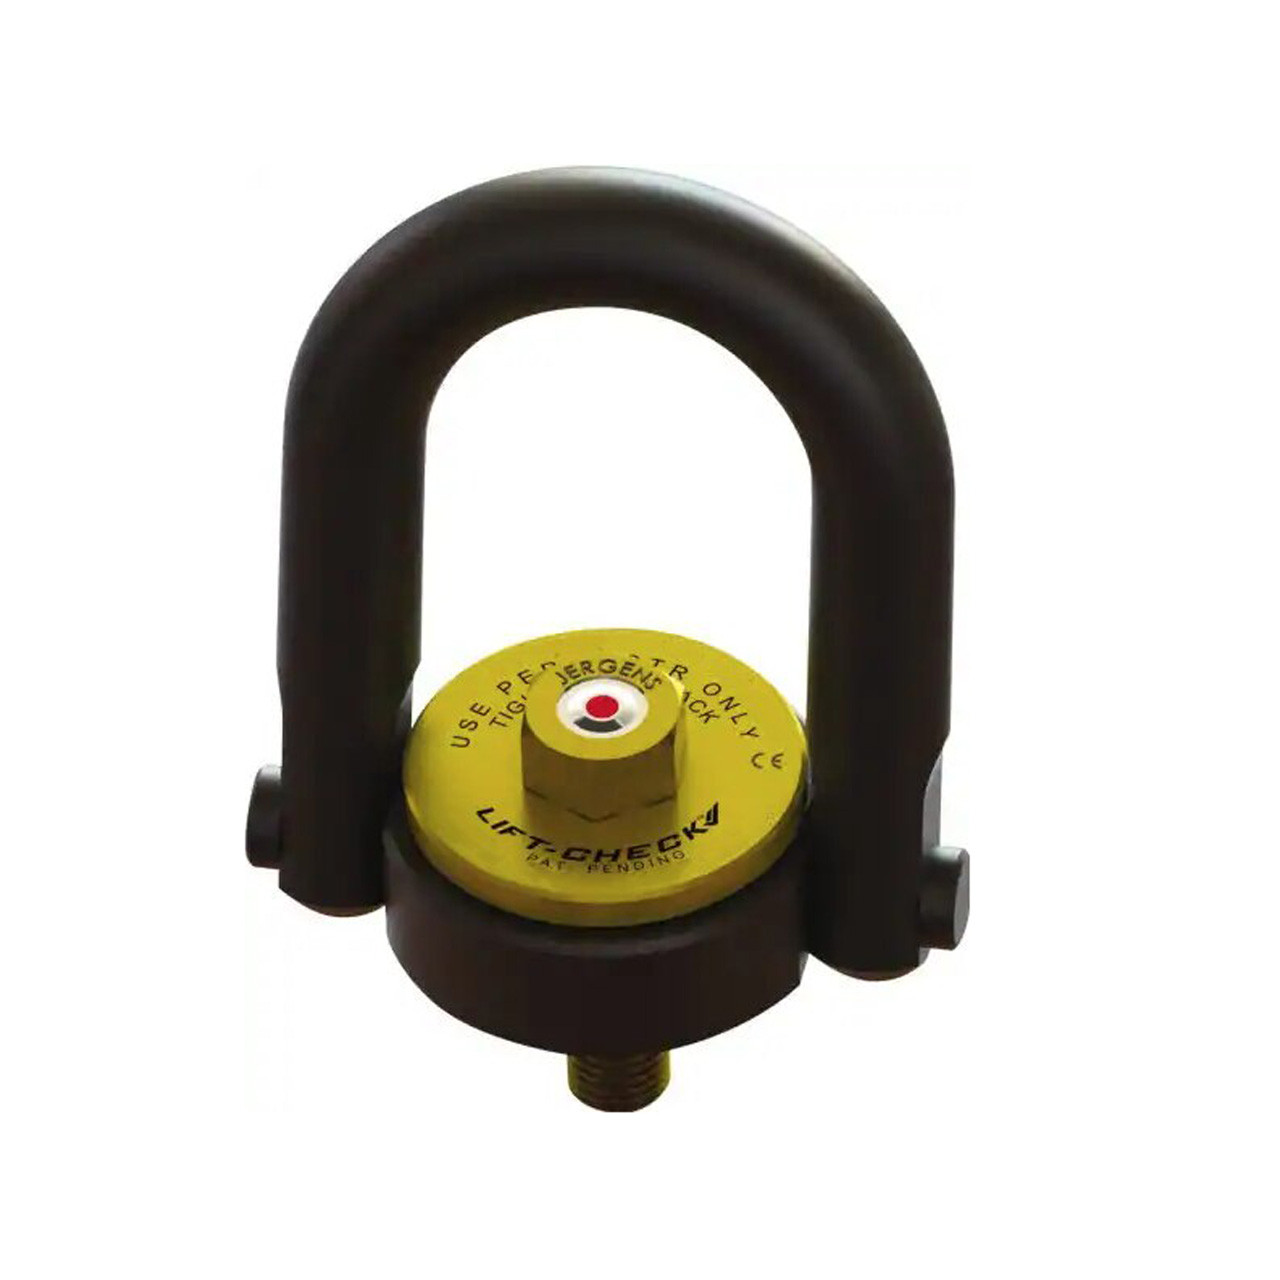 Jergens Inc Lift Check  Hoist Ring 4000 lb Load Capacity 5/8-11-Inch Thread Size EDP: JERG-23416LC